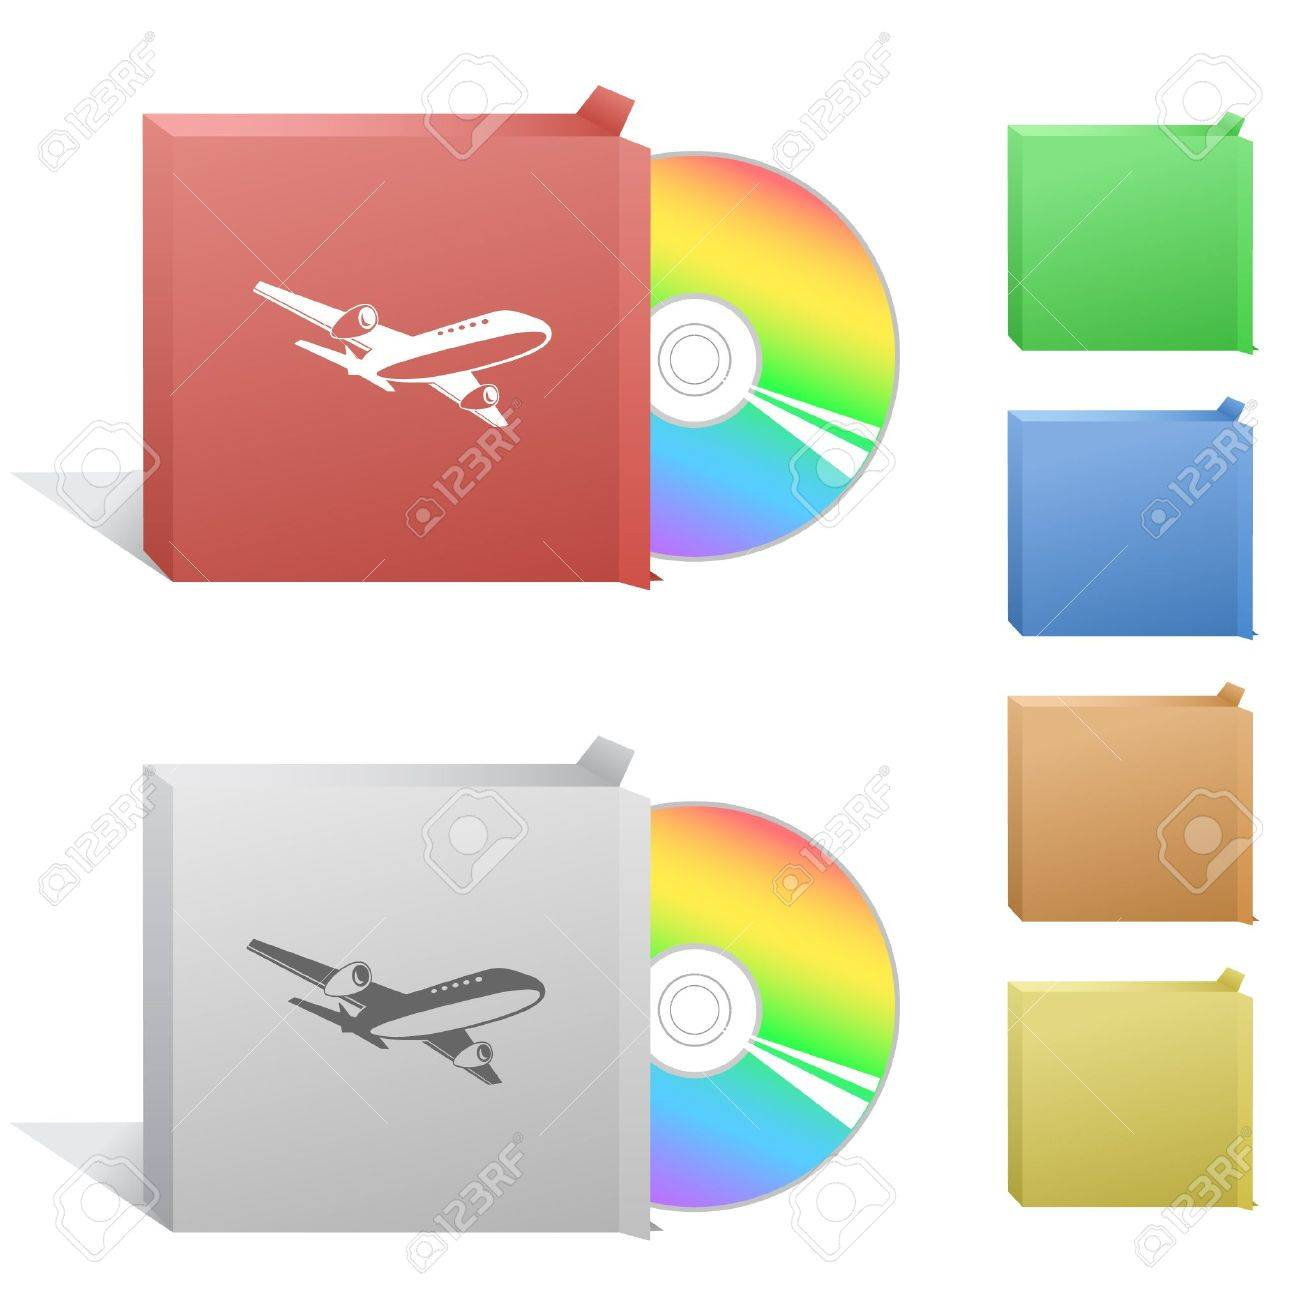 Airliner. Box with compact disc. Stock Vector - 6770820